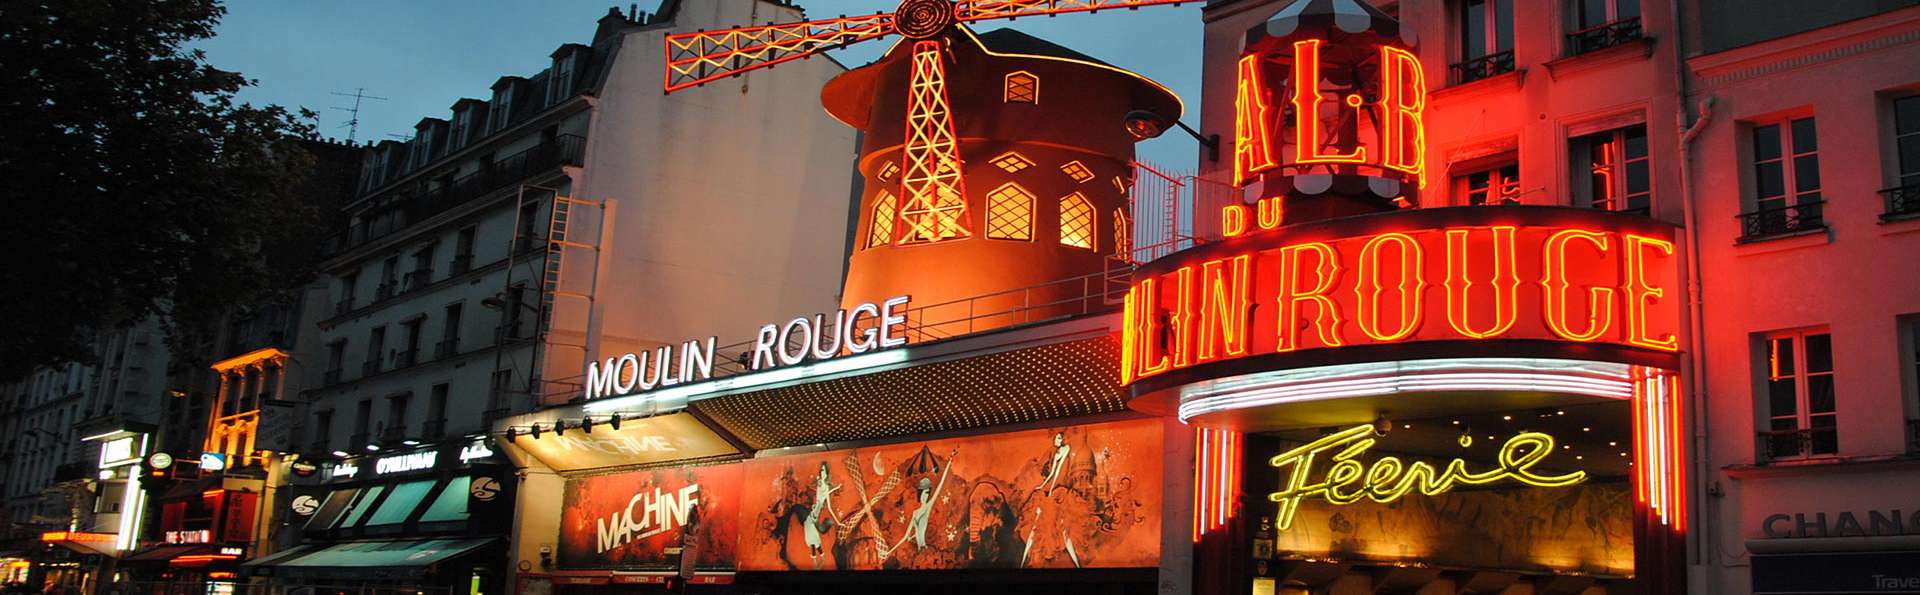 Mob Hotel Paris Les Puces - Edit_MoulinRouge.jpg